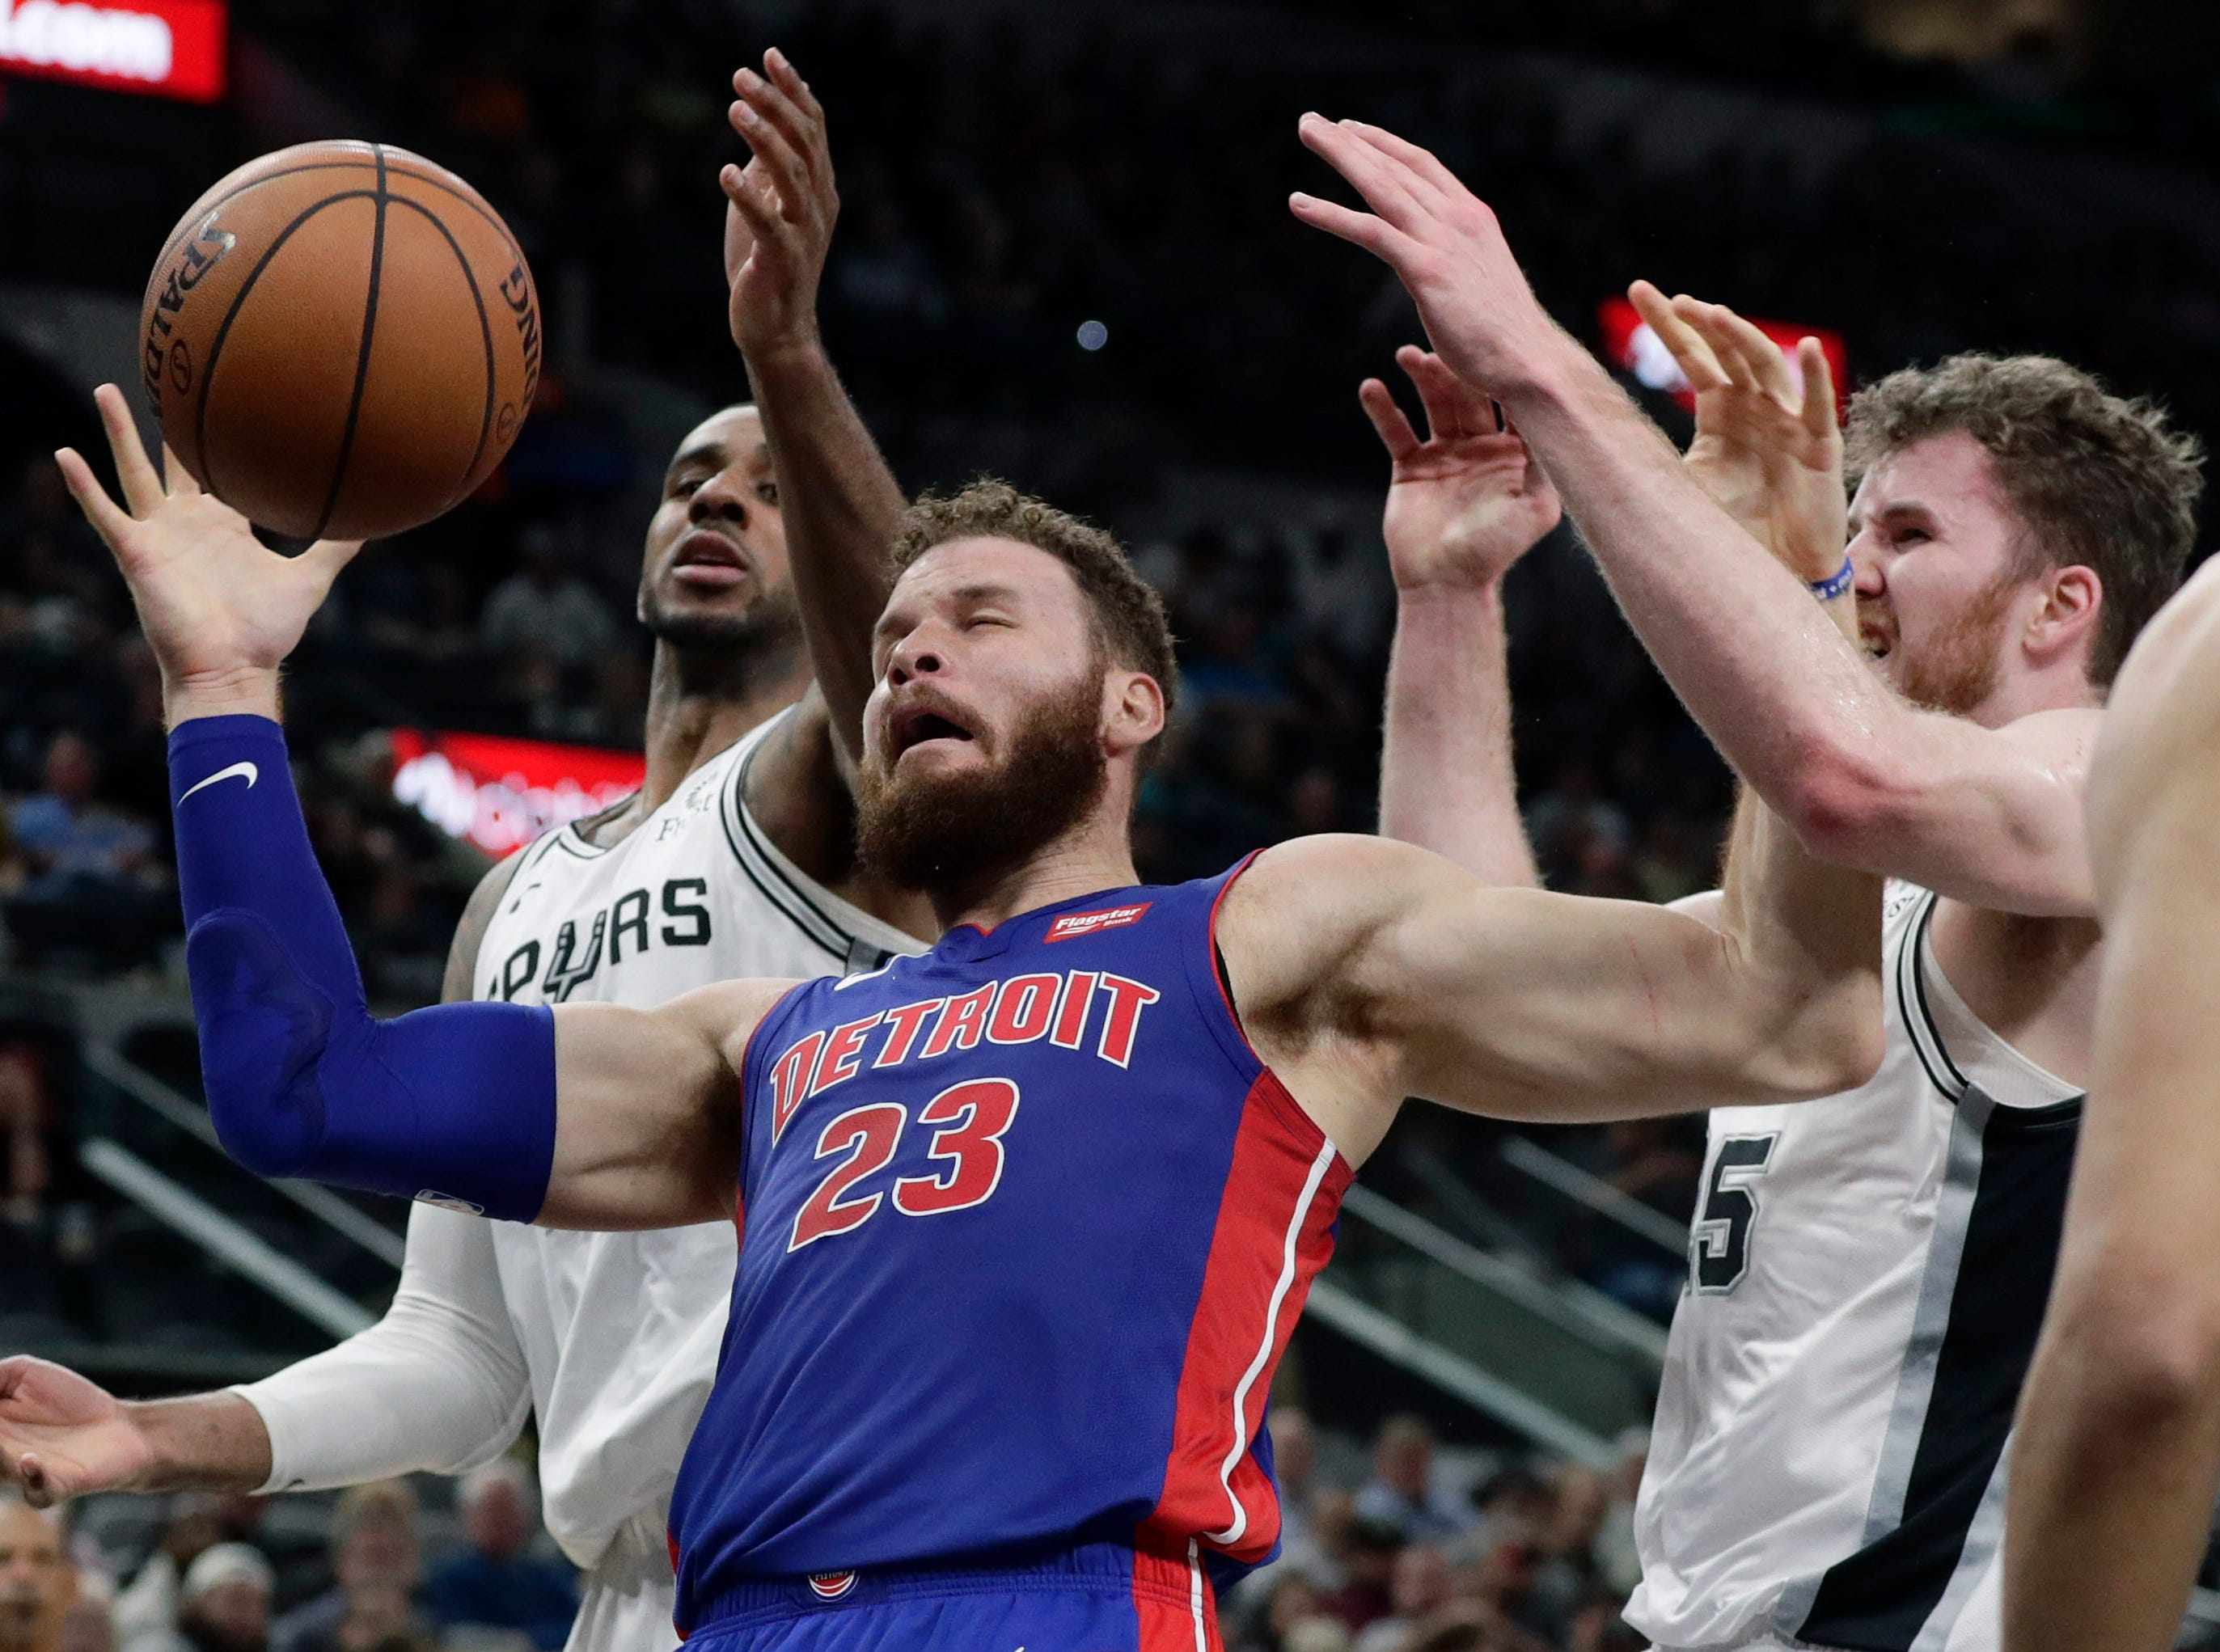 San Antonio Spurs center LaMarcus Aldridge, left, causes Detroit Pistons forward Blake Griffin (23) to lose control of the ball during the first half.